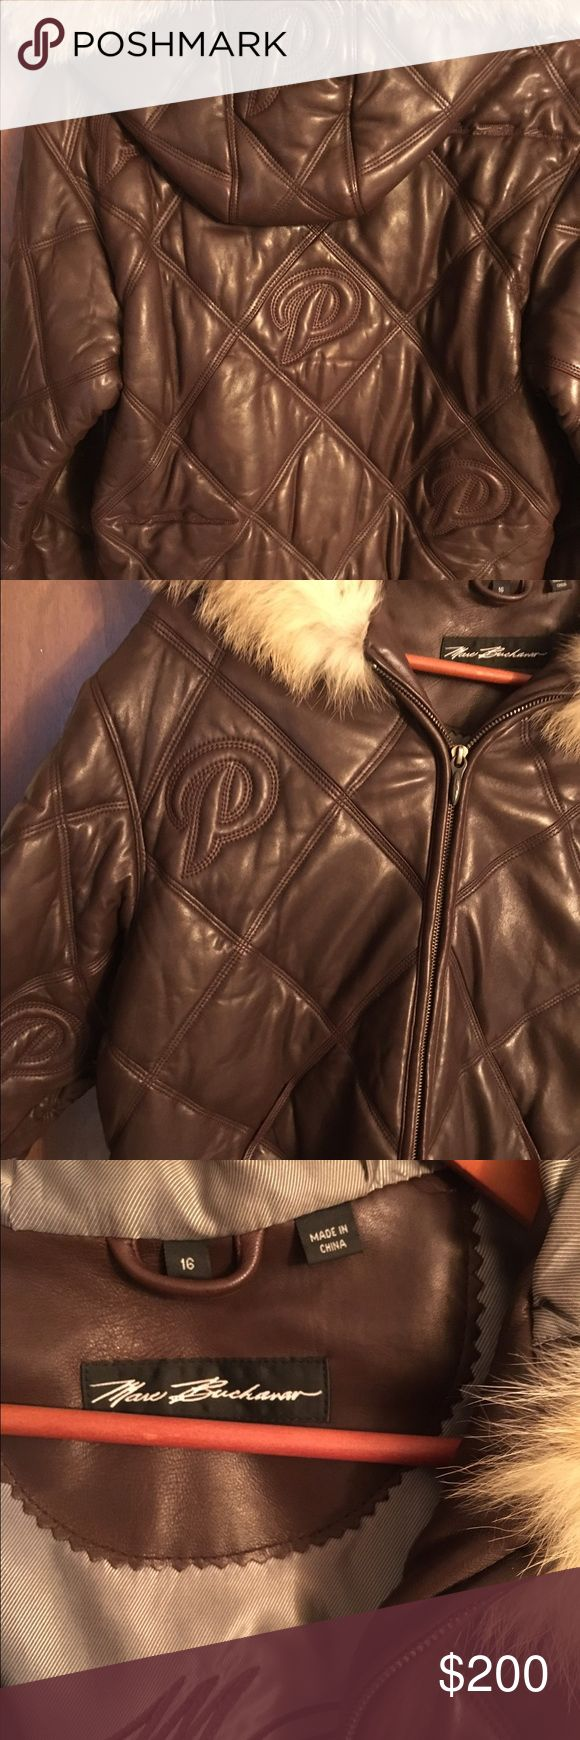 Pelle Pelle Jacket Unisex brown leather bomber. Fur trim around the hood. Excellent condition! Smoke free pet friendly home. Marc Buchanan Jackets & Coats Puffers